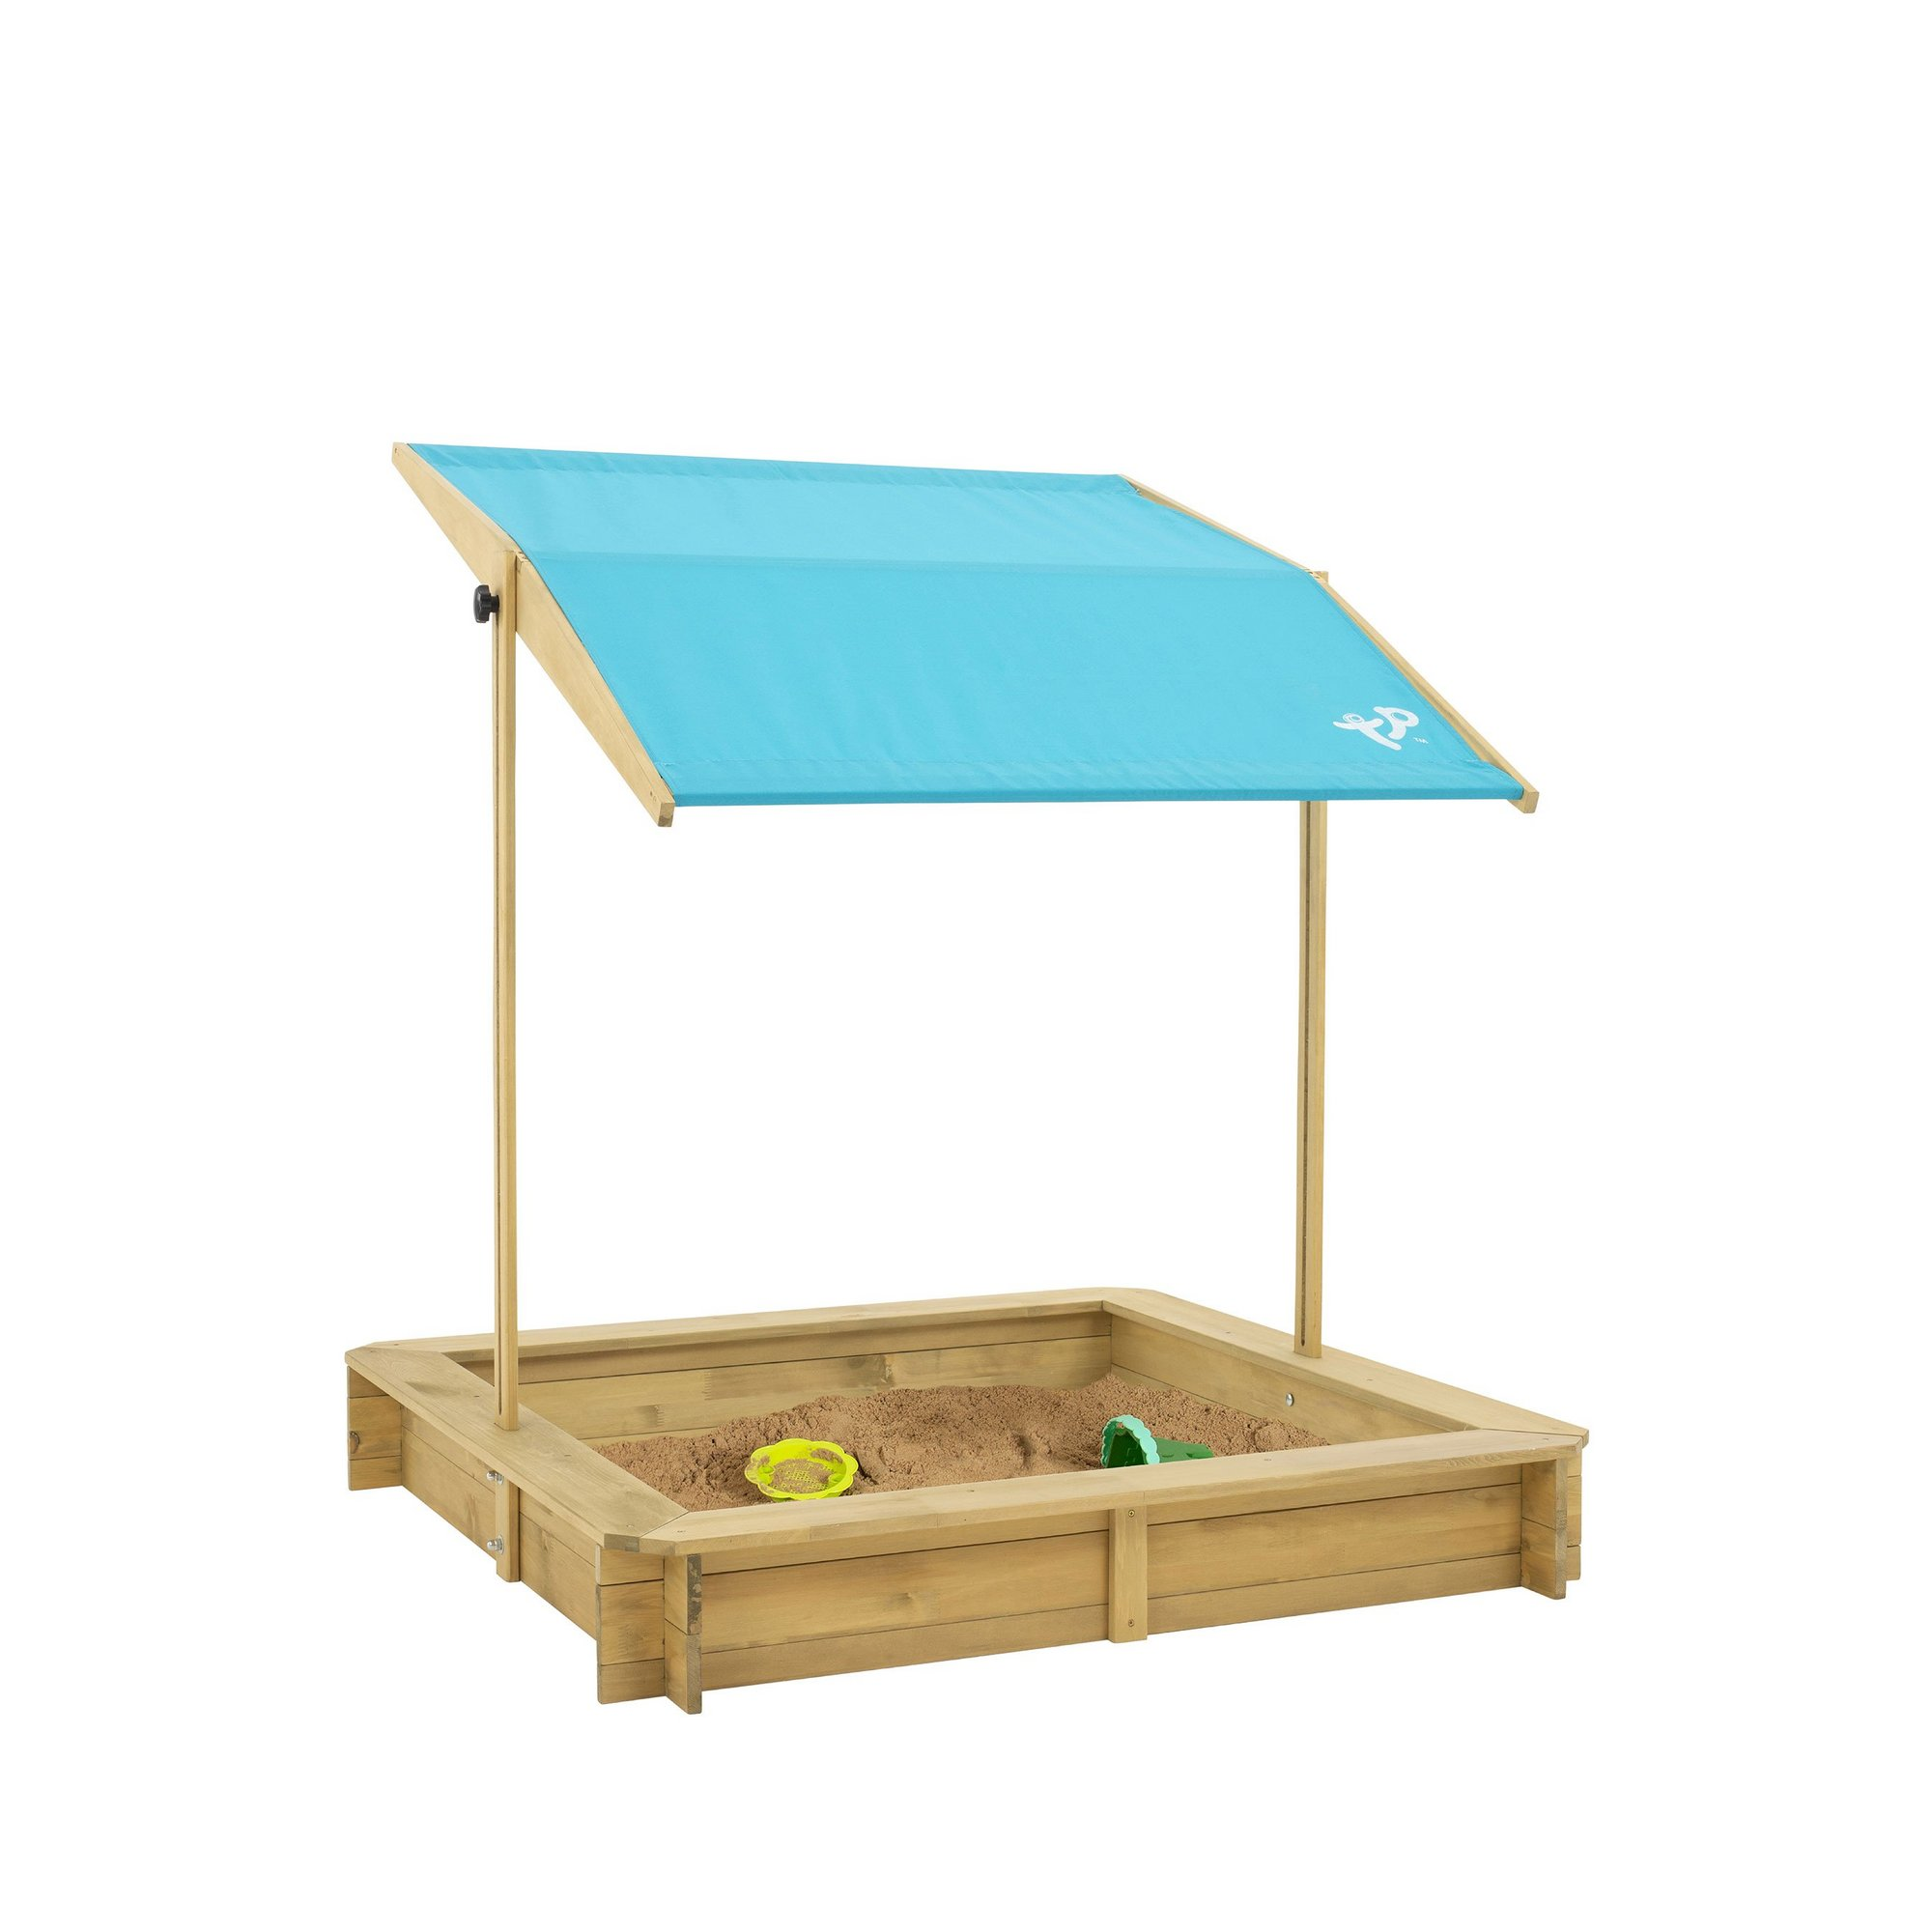 Image of TP Toys Wooden Sandpit with Sun Canopy